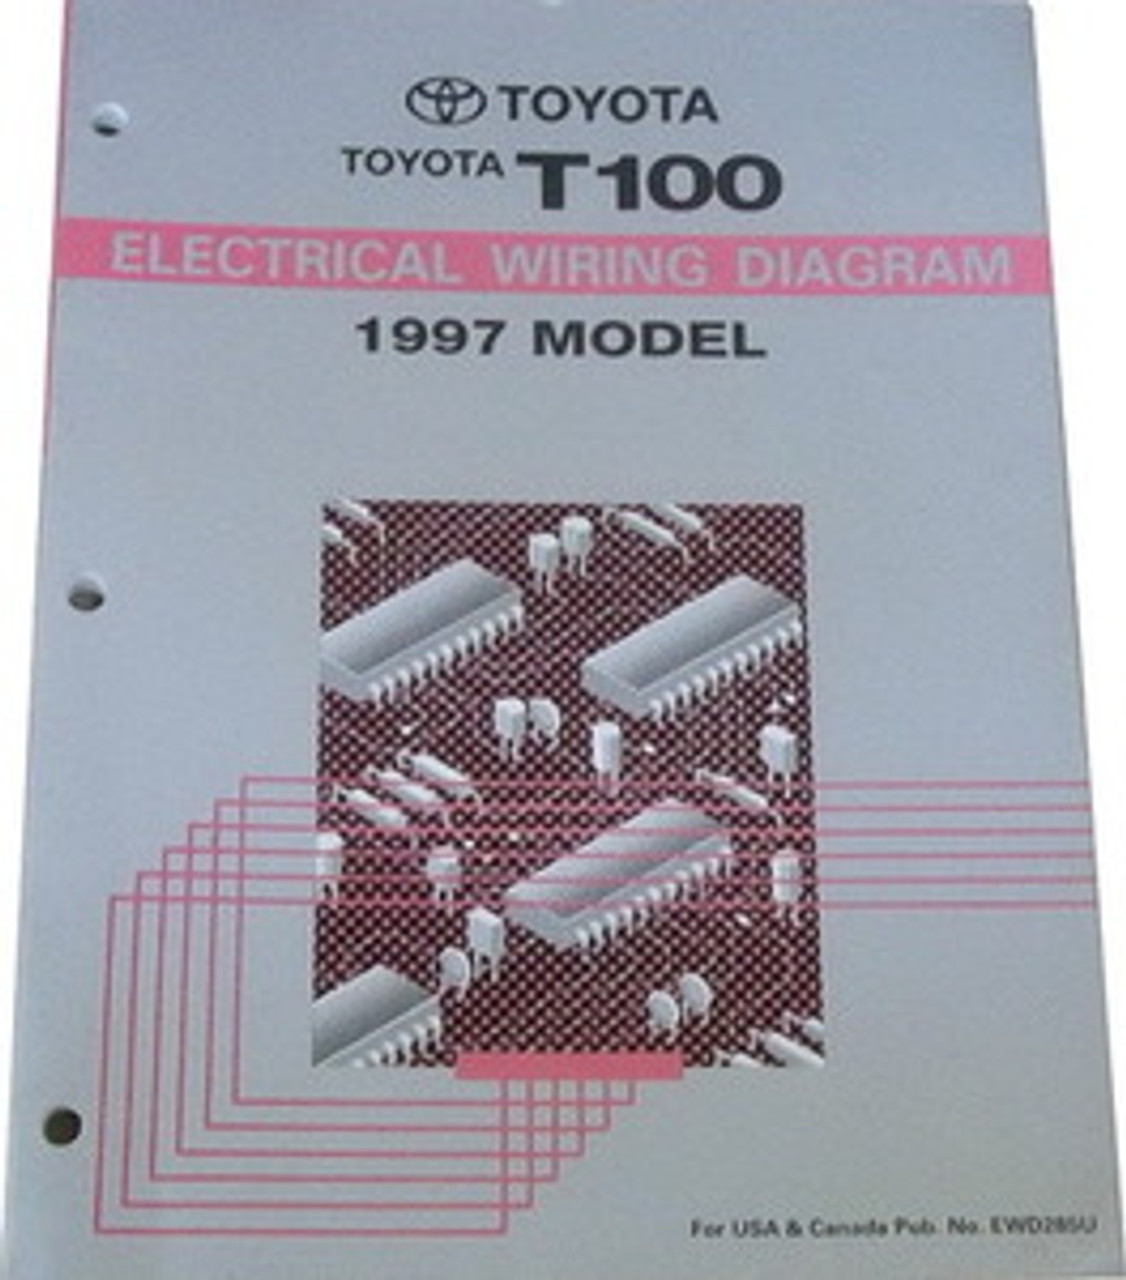 1997 Toyota T100 Truck Electrical Wiring Diagrams Original - Factory Repair  Manuals | 1997 Toyota T100 Wiring Diagram |  | Factory Repair Manuals